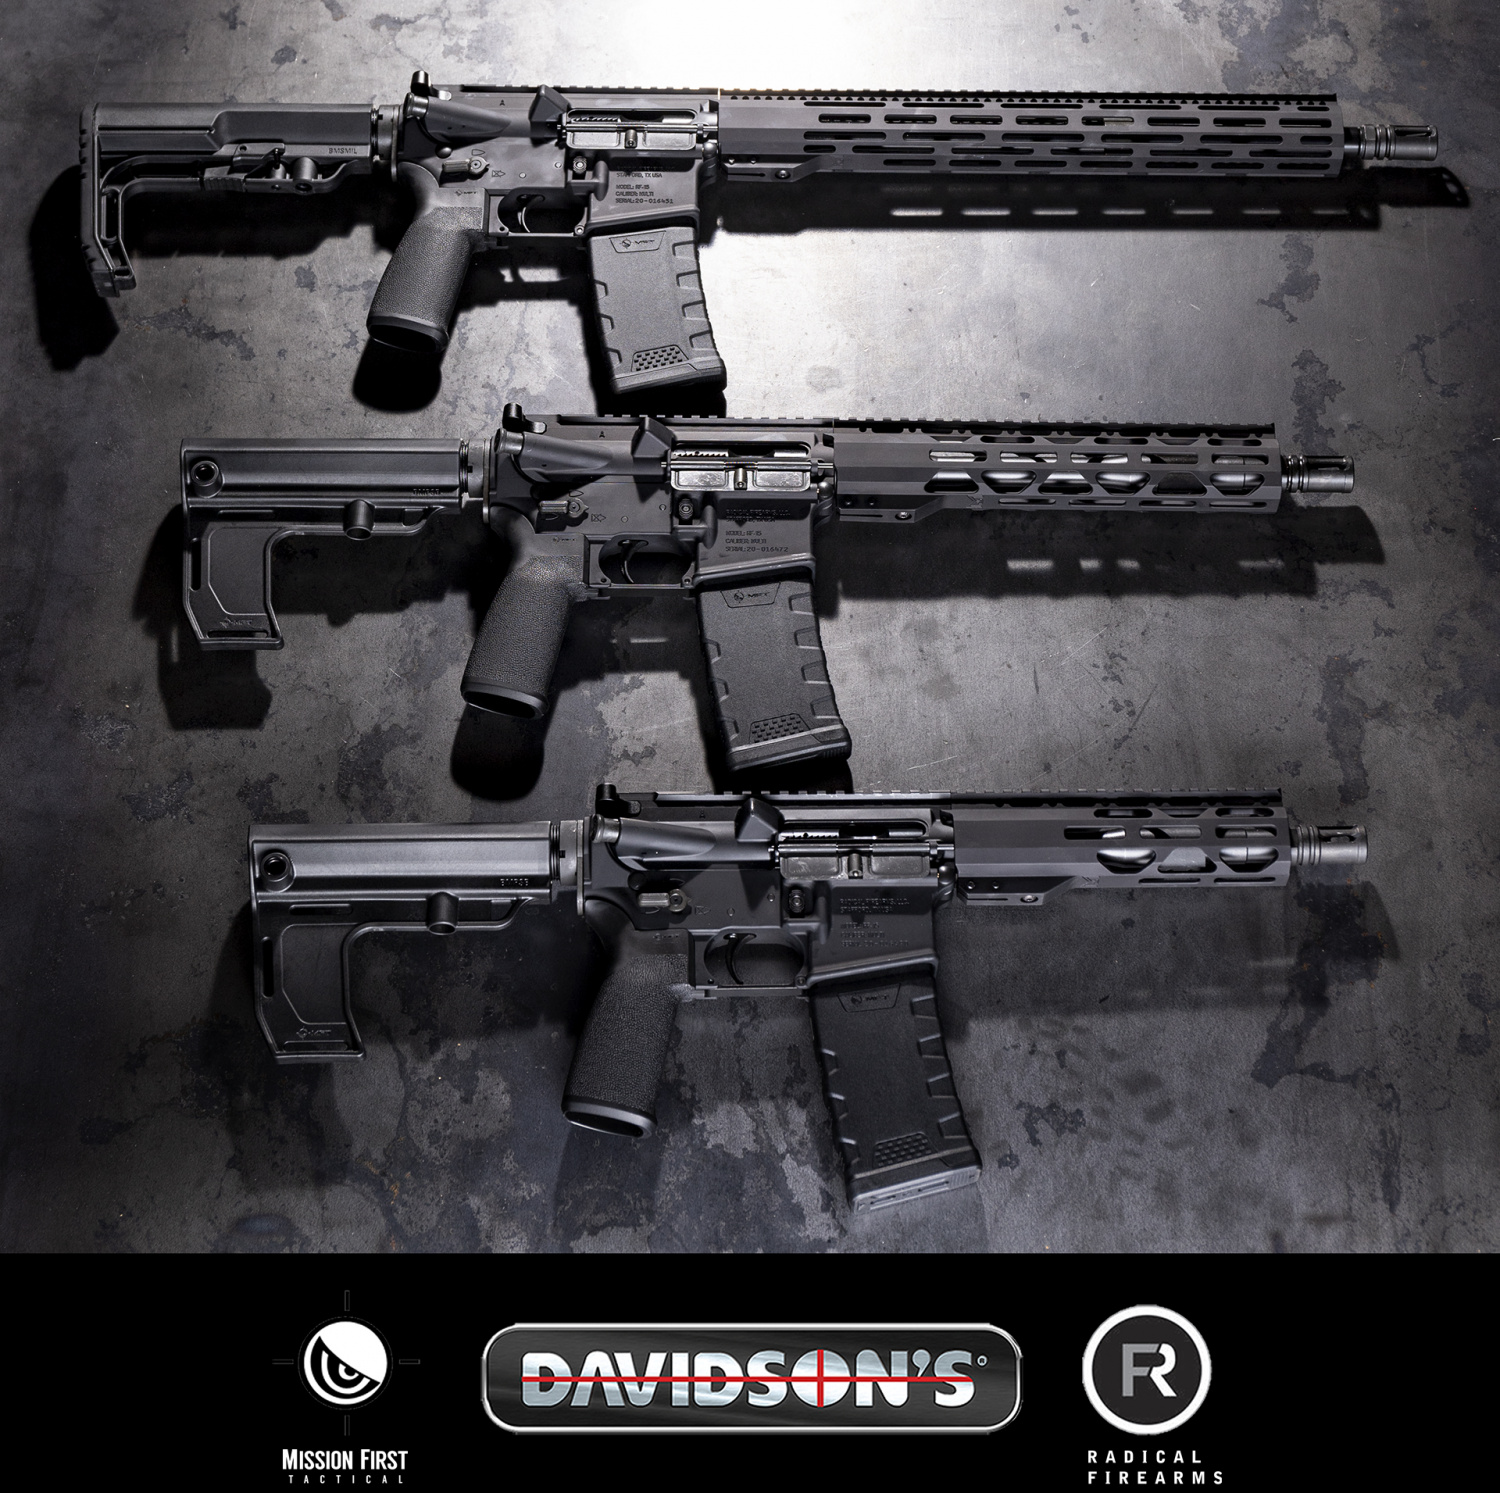 The three new Davidson's/Radical/MFT exclusives side-by-side.